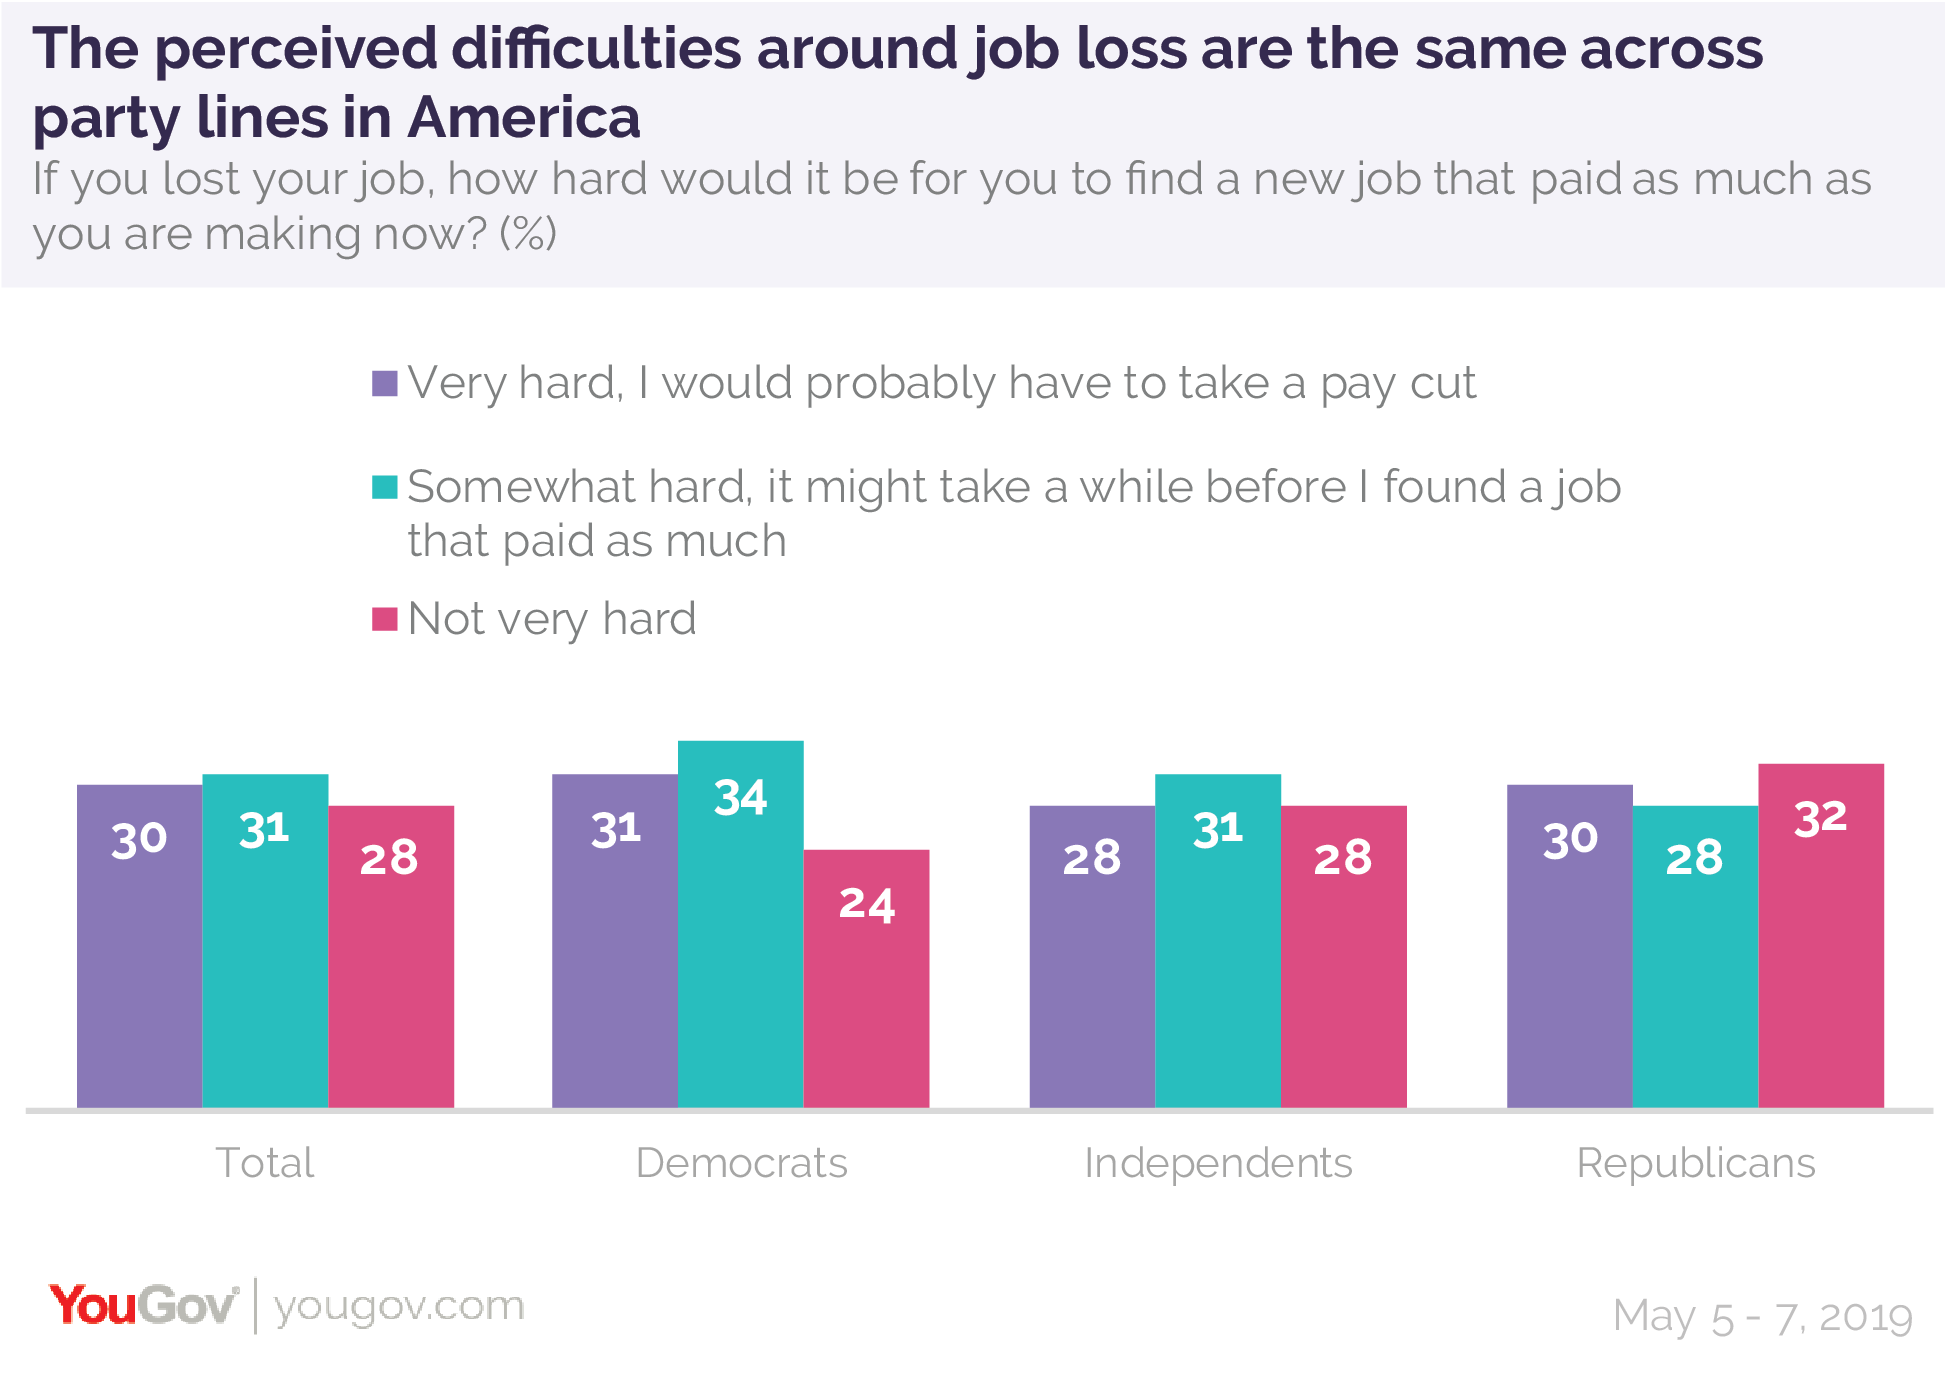 The perceived difficulties around job loss in America are the same across party lines